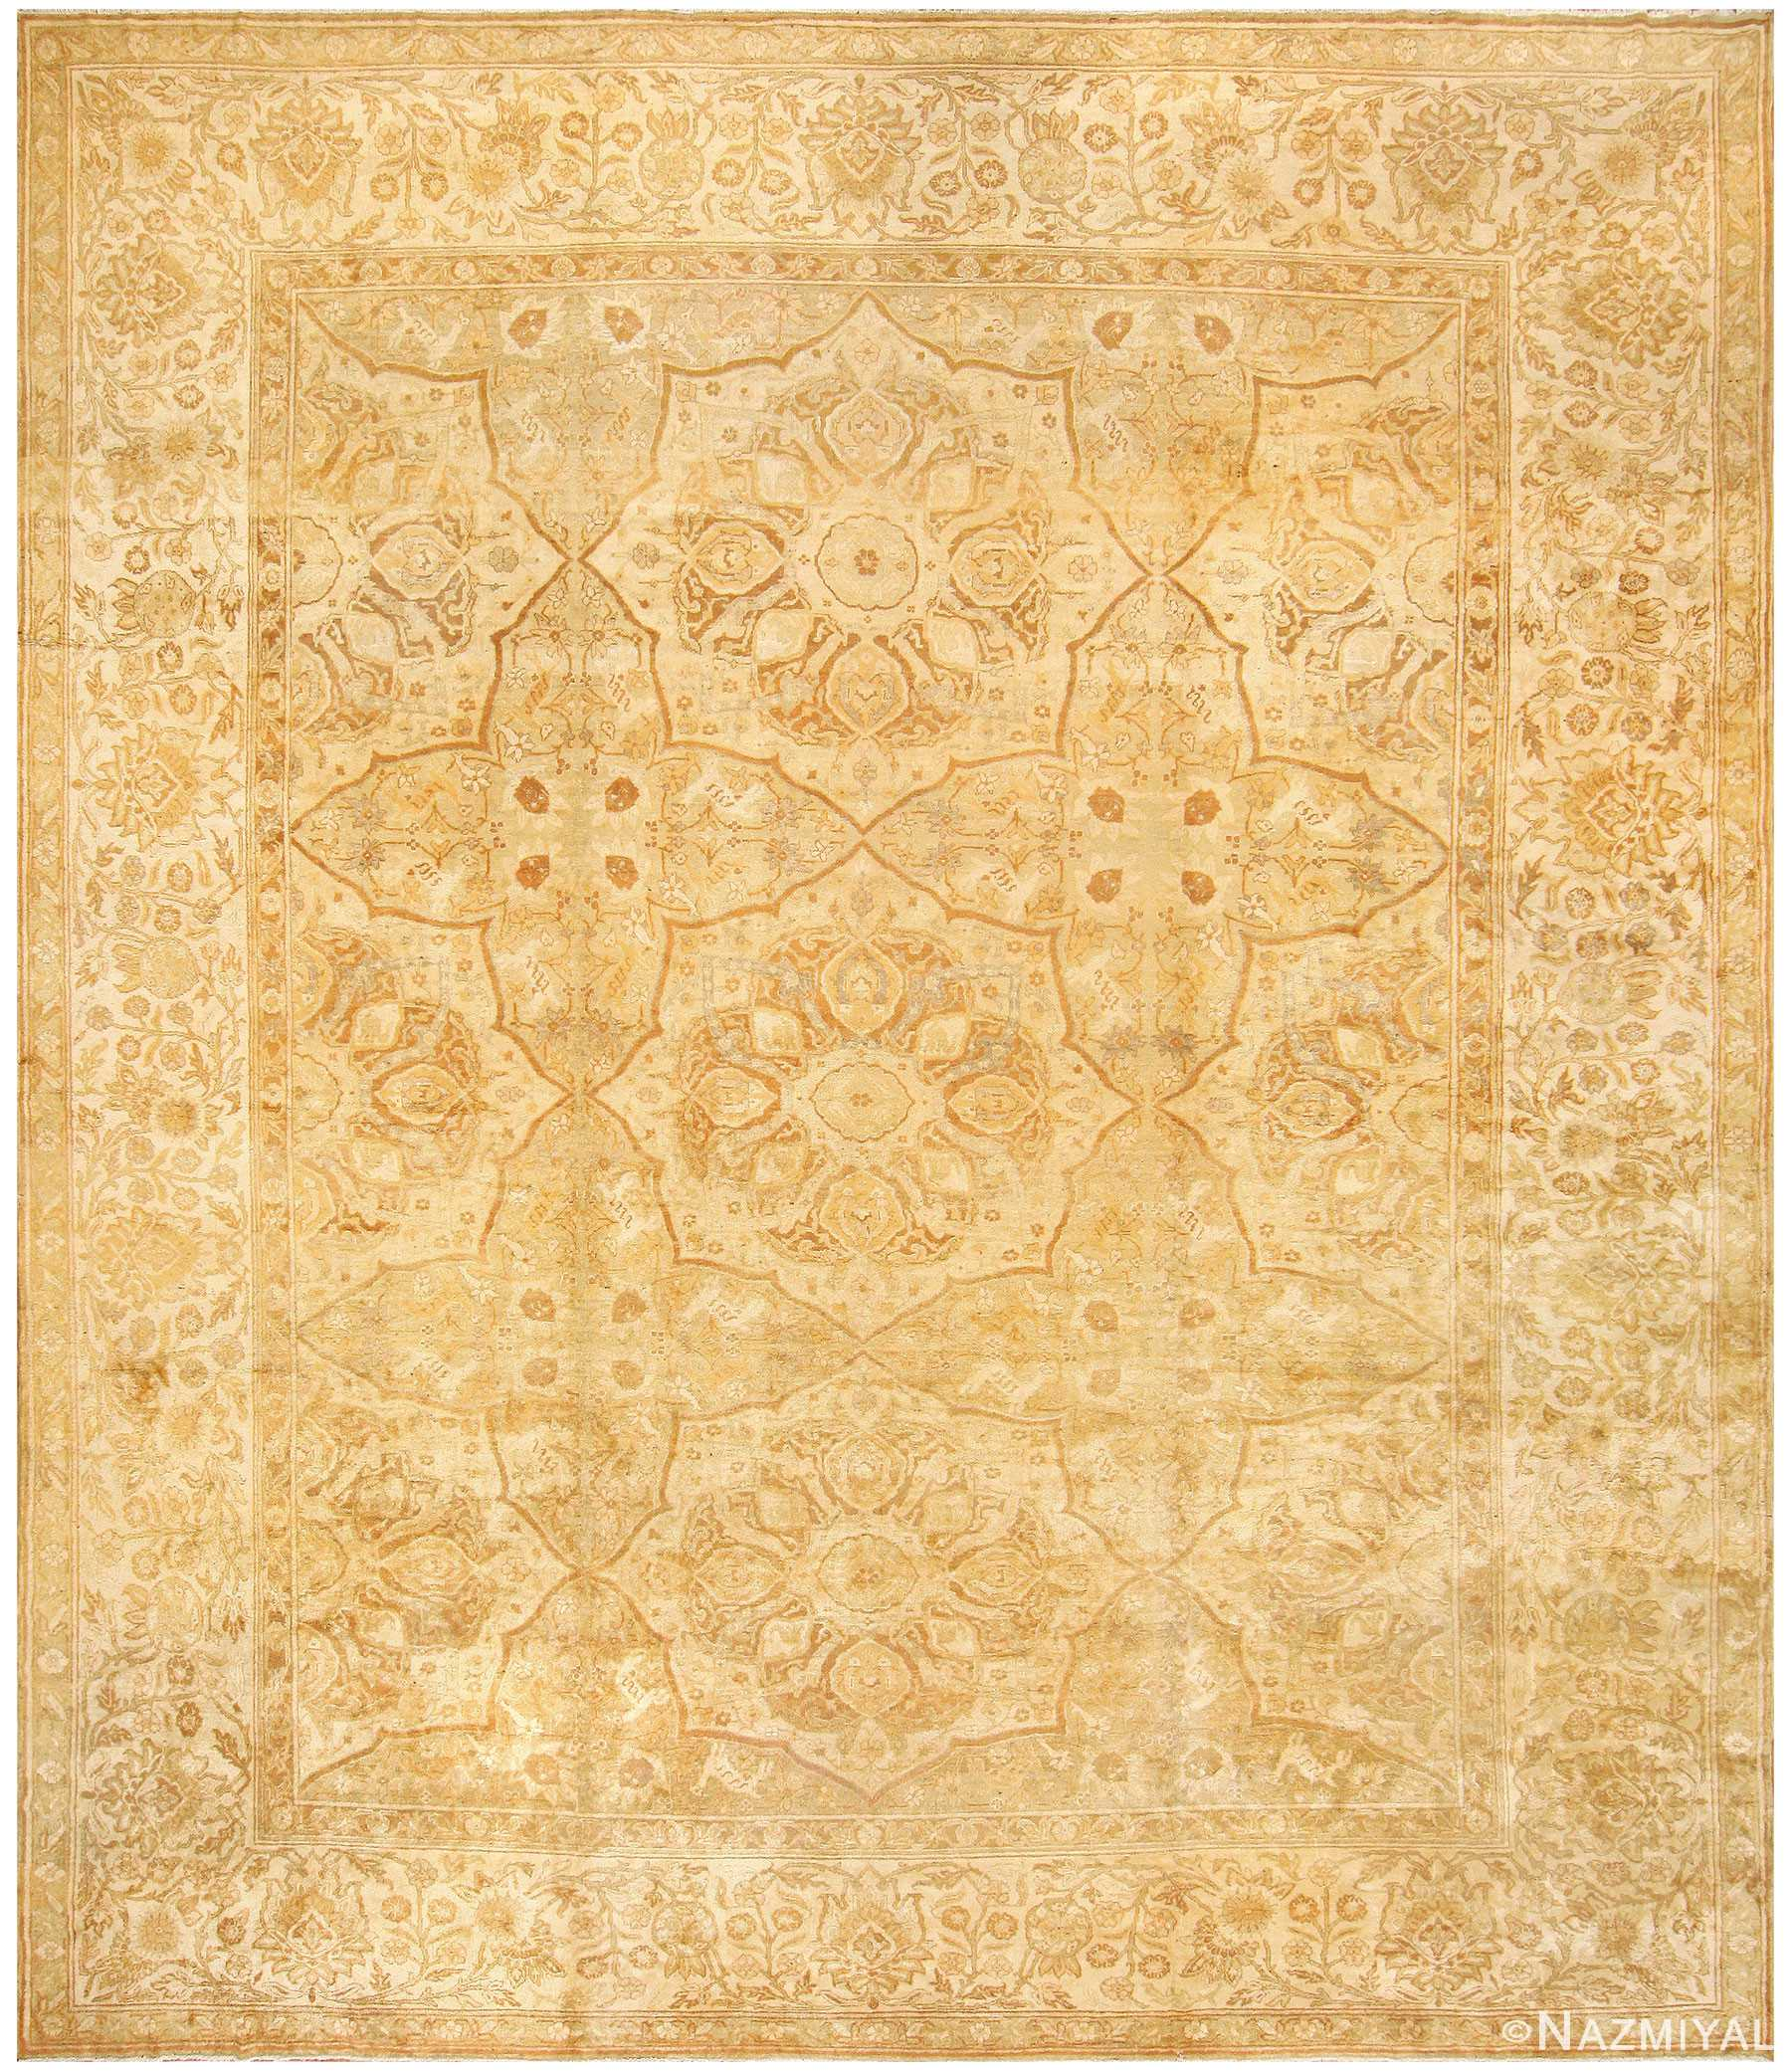 Large Gold Antique Indian Agra Rug 50261 by Nazmiyal